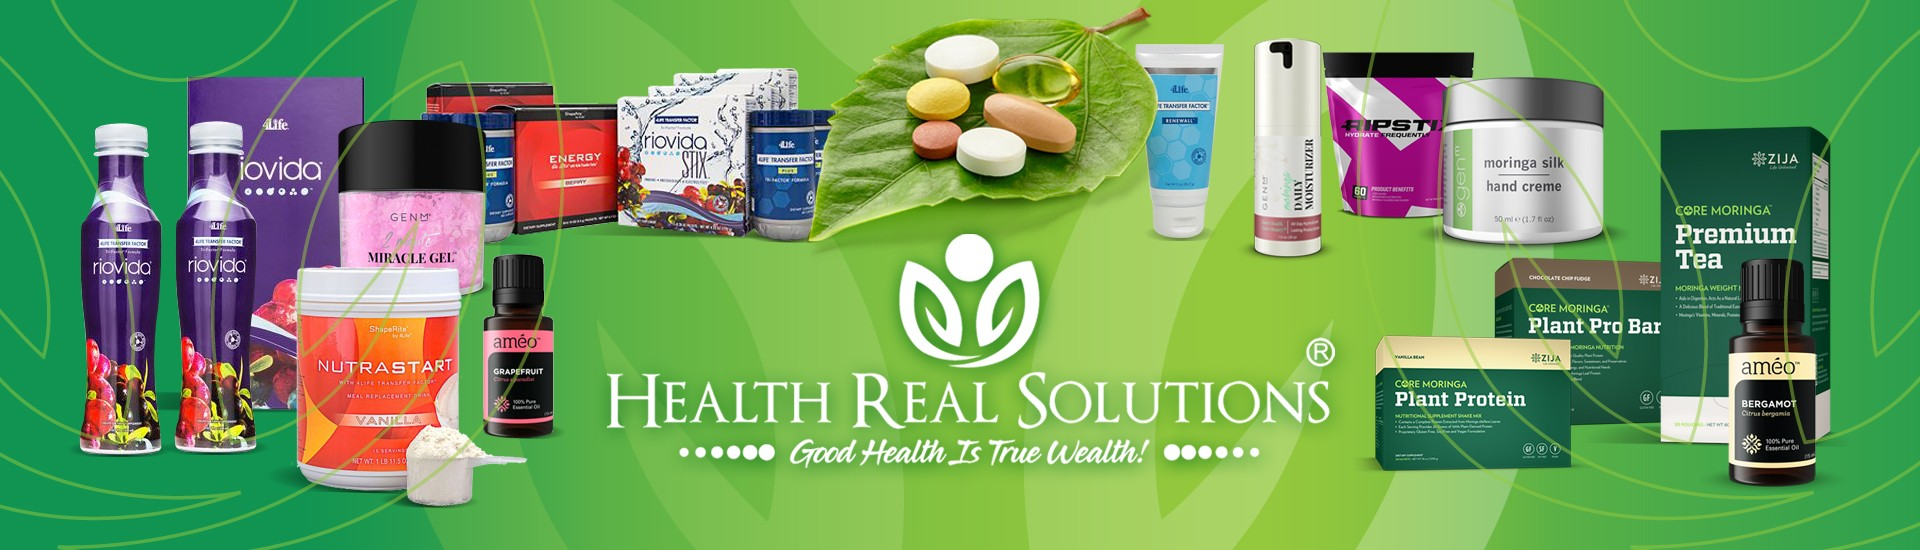 Health Real Solutions